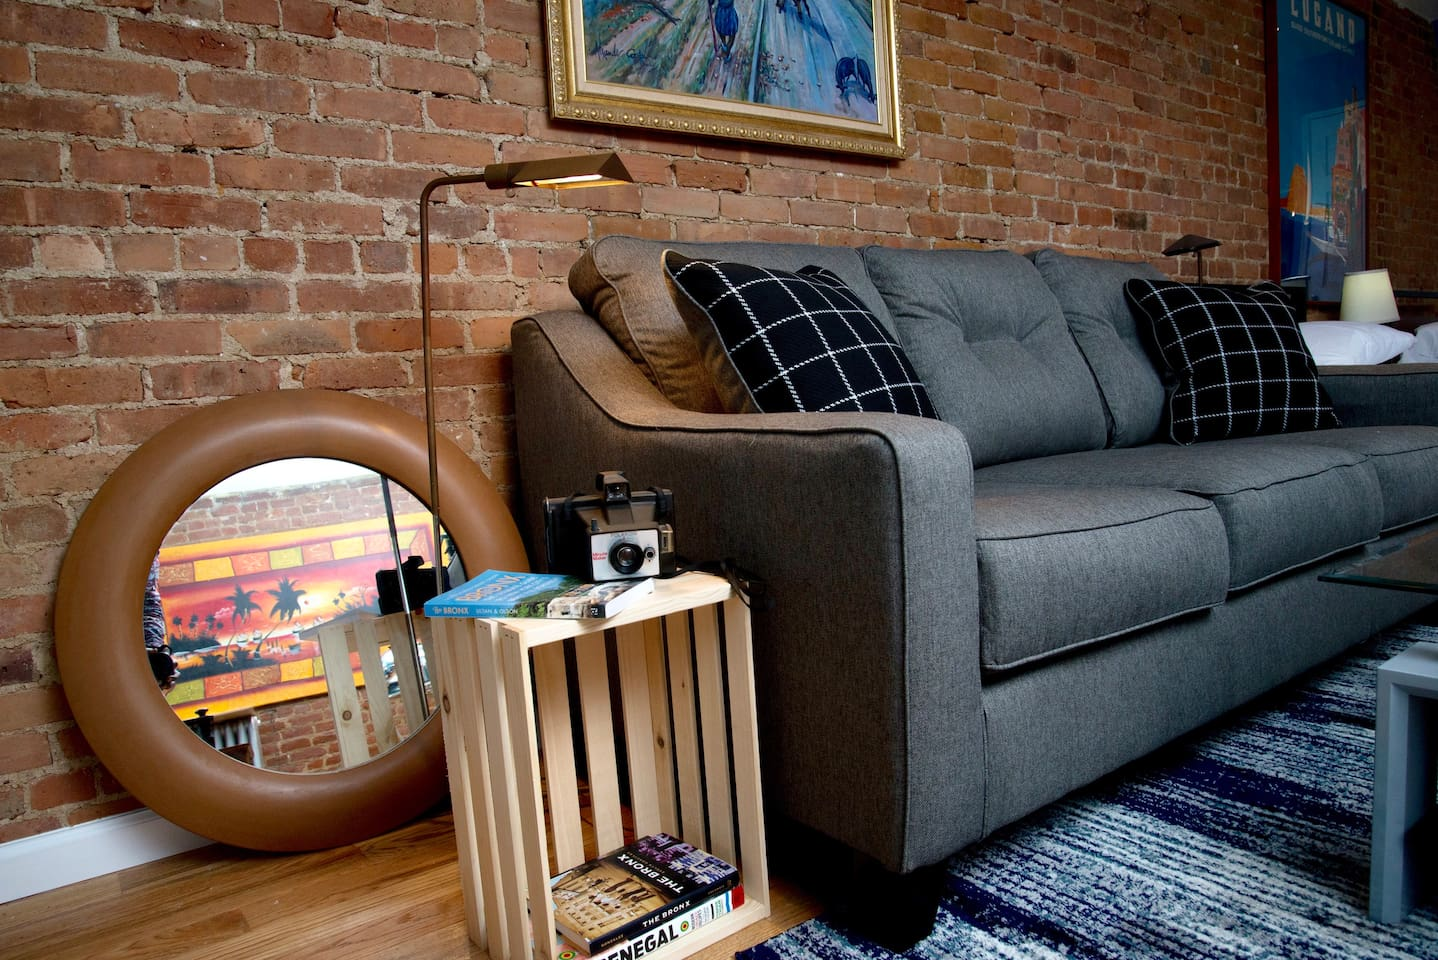 Settle into our softly upholstered sofa and click into HBO, Show Time or Netflix after a day exploring the city